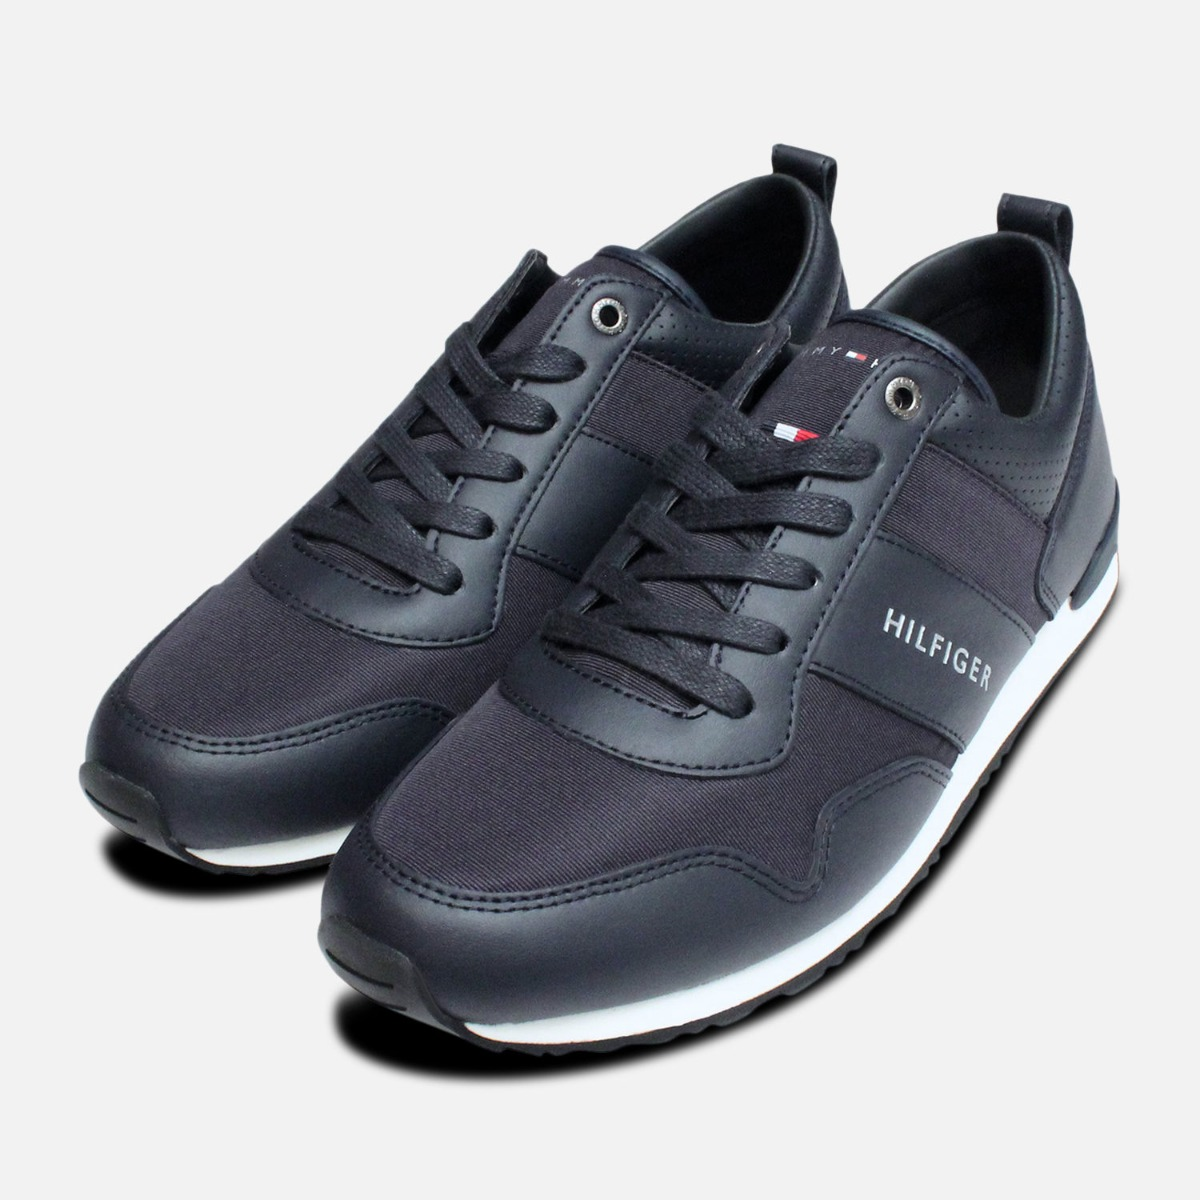 shoes tommy hilfiger